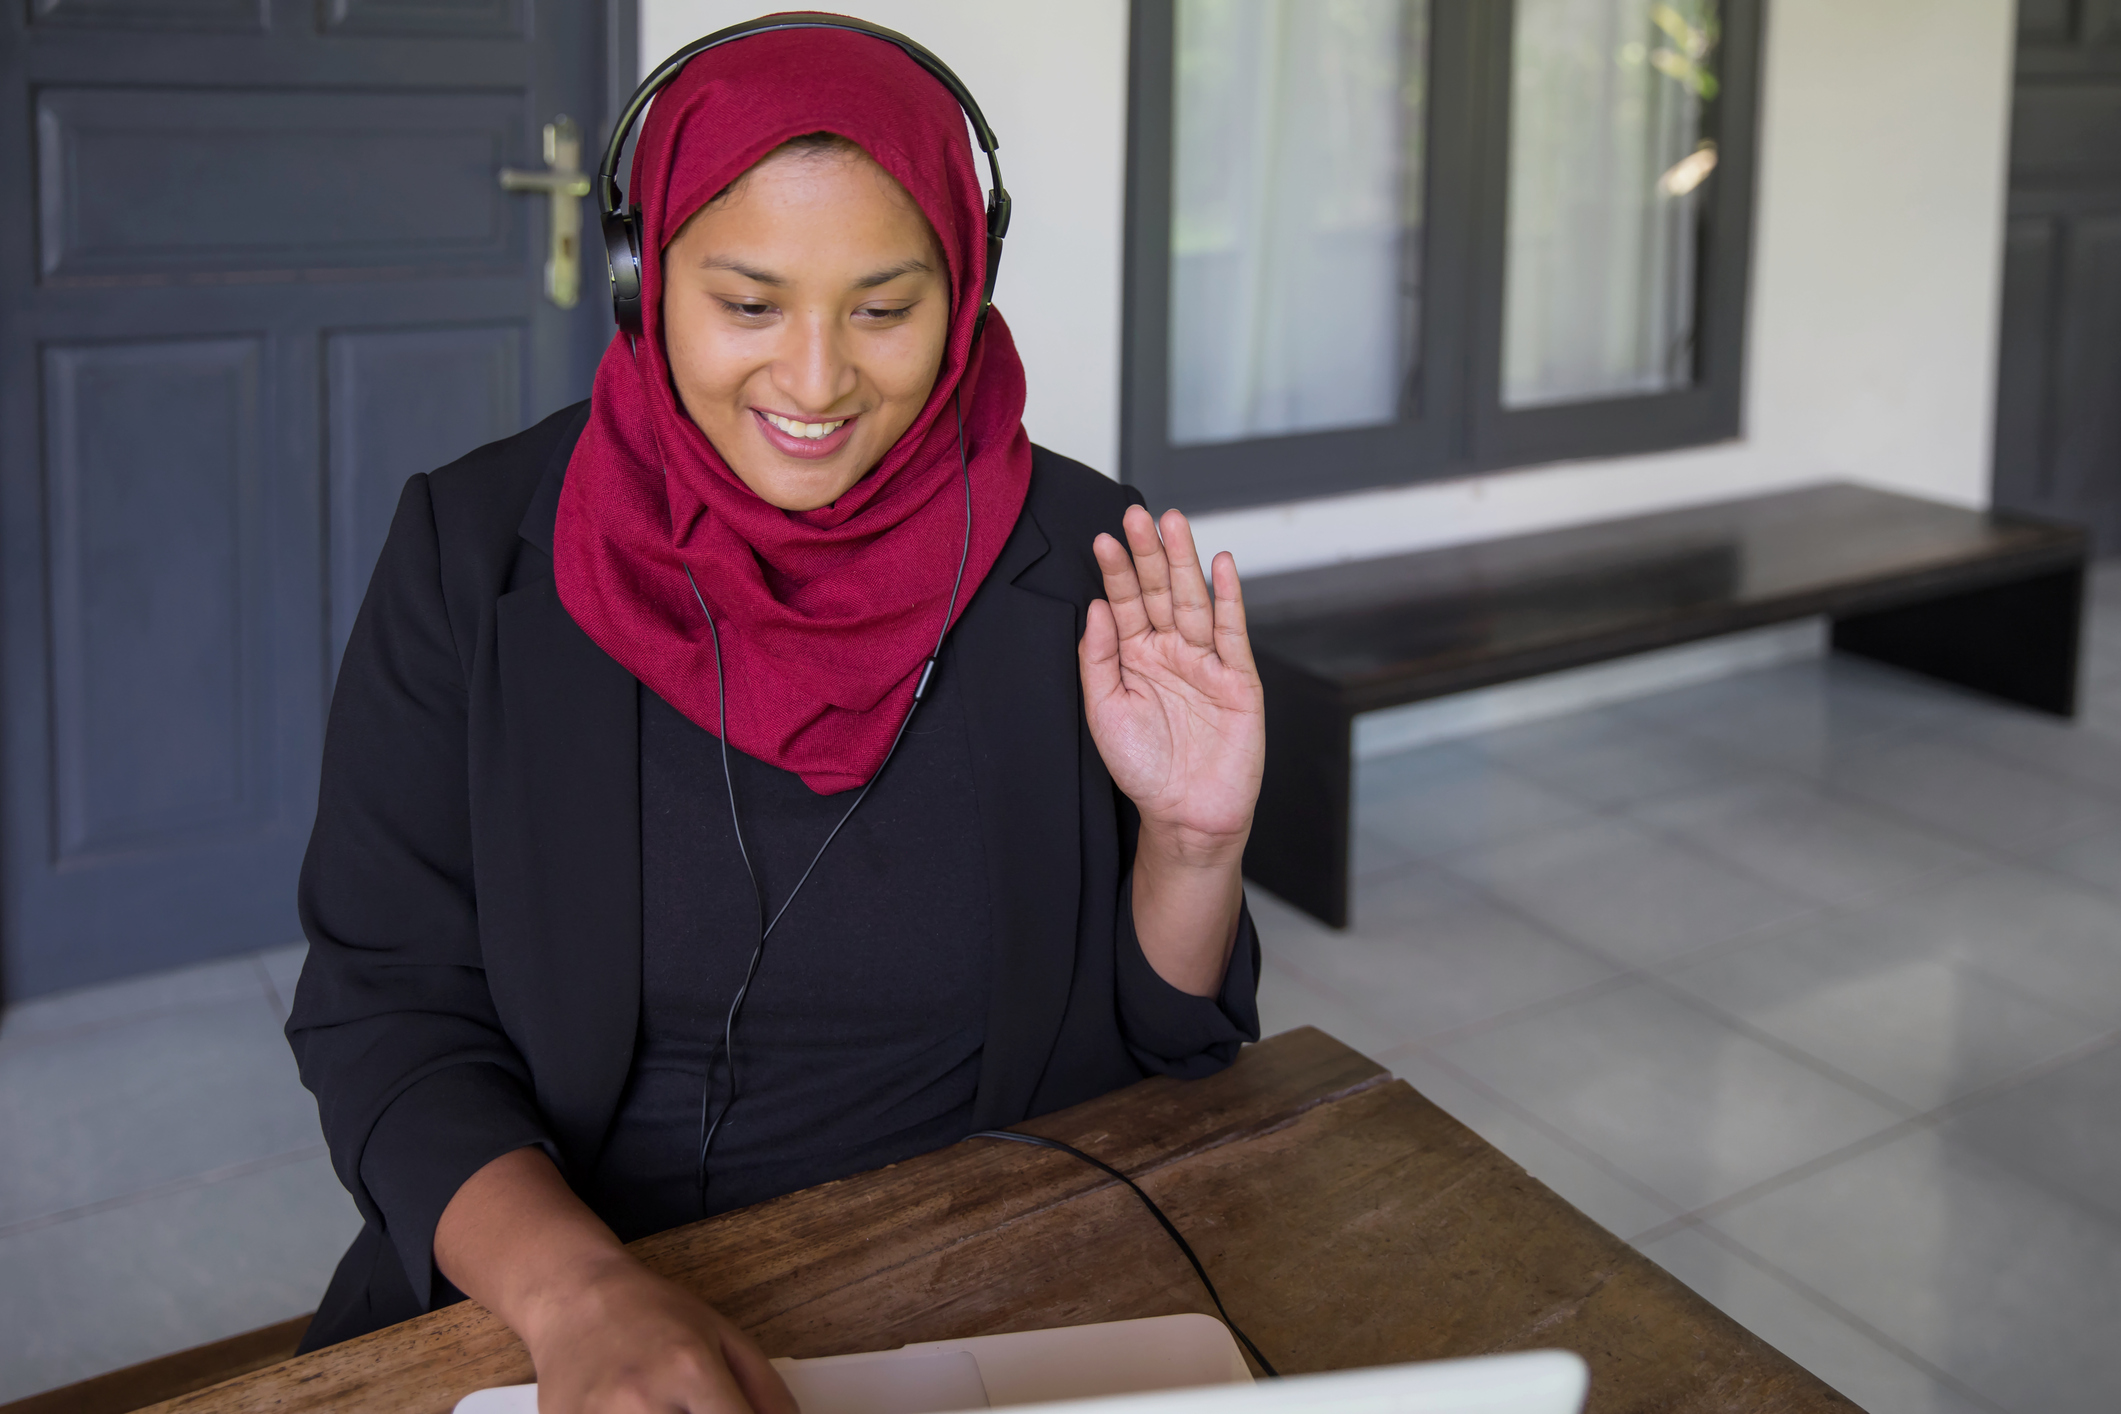 woman in a hijab waves during a zoom interview